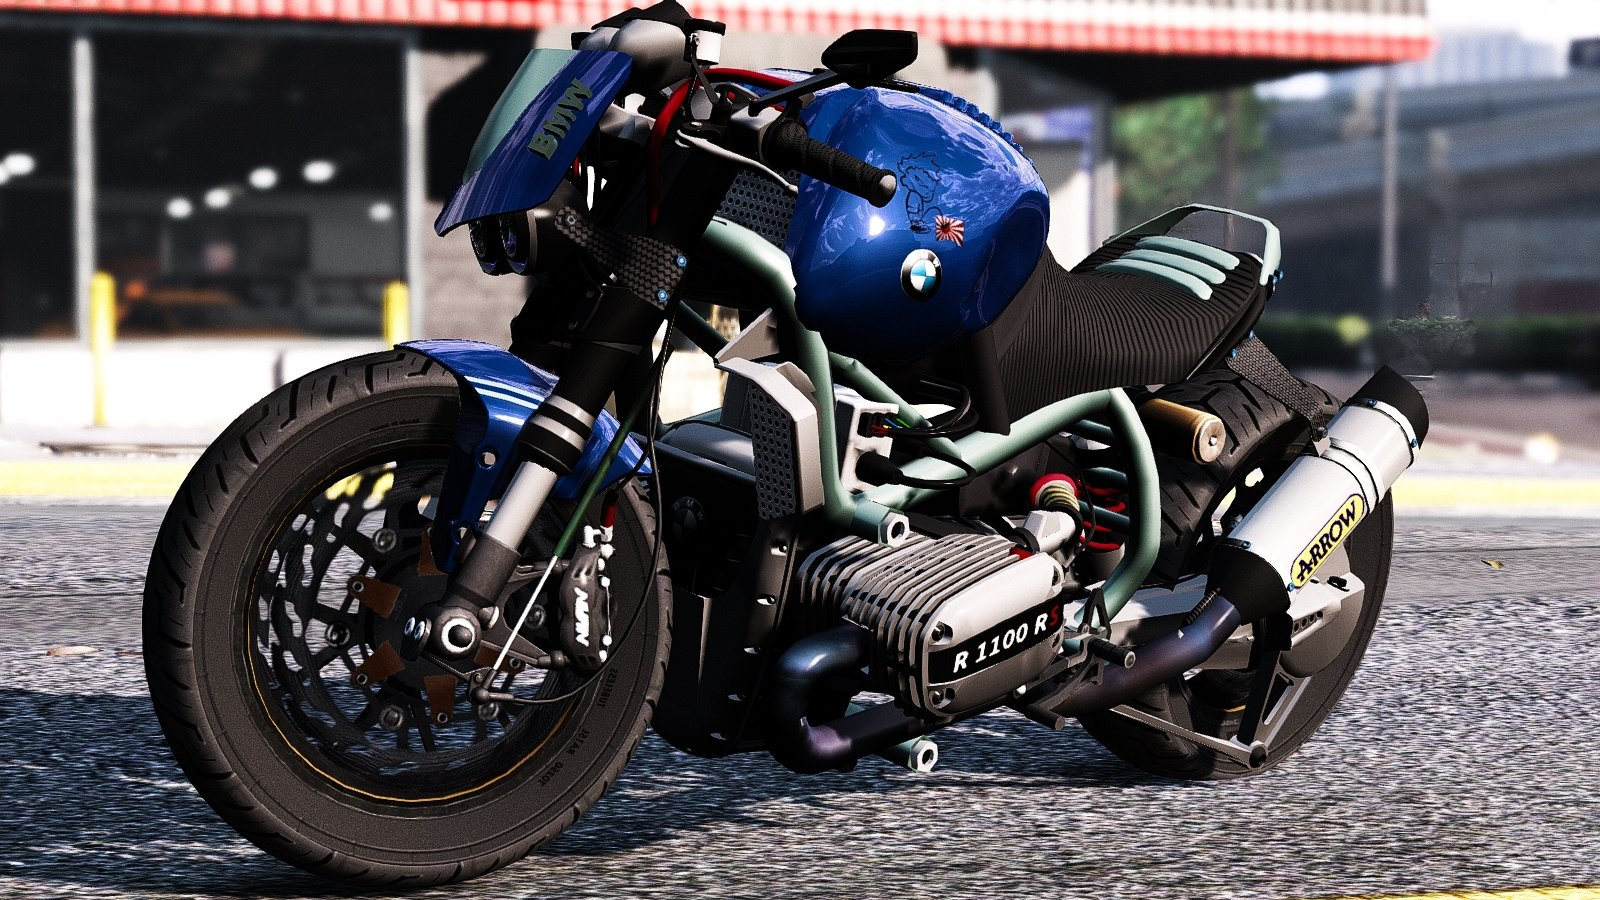 bmw r 1100r street fighter add on replace animated gta5. Black Bedroom Furniture Sets. Home Design Ideas